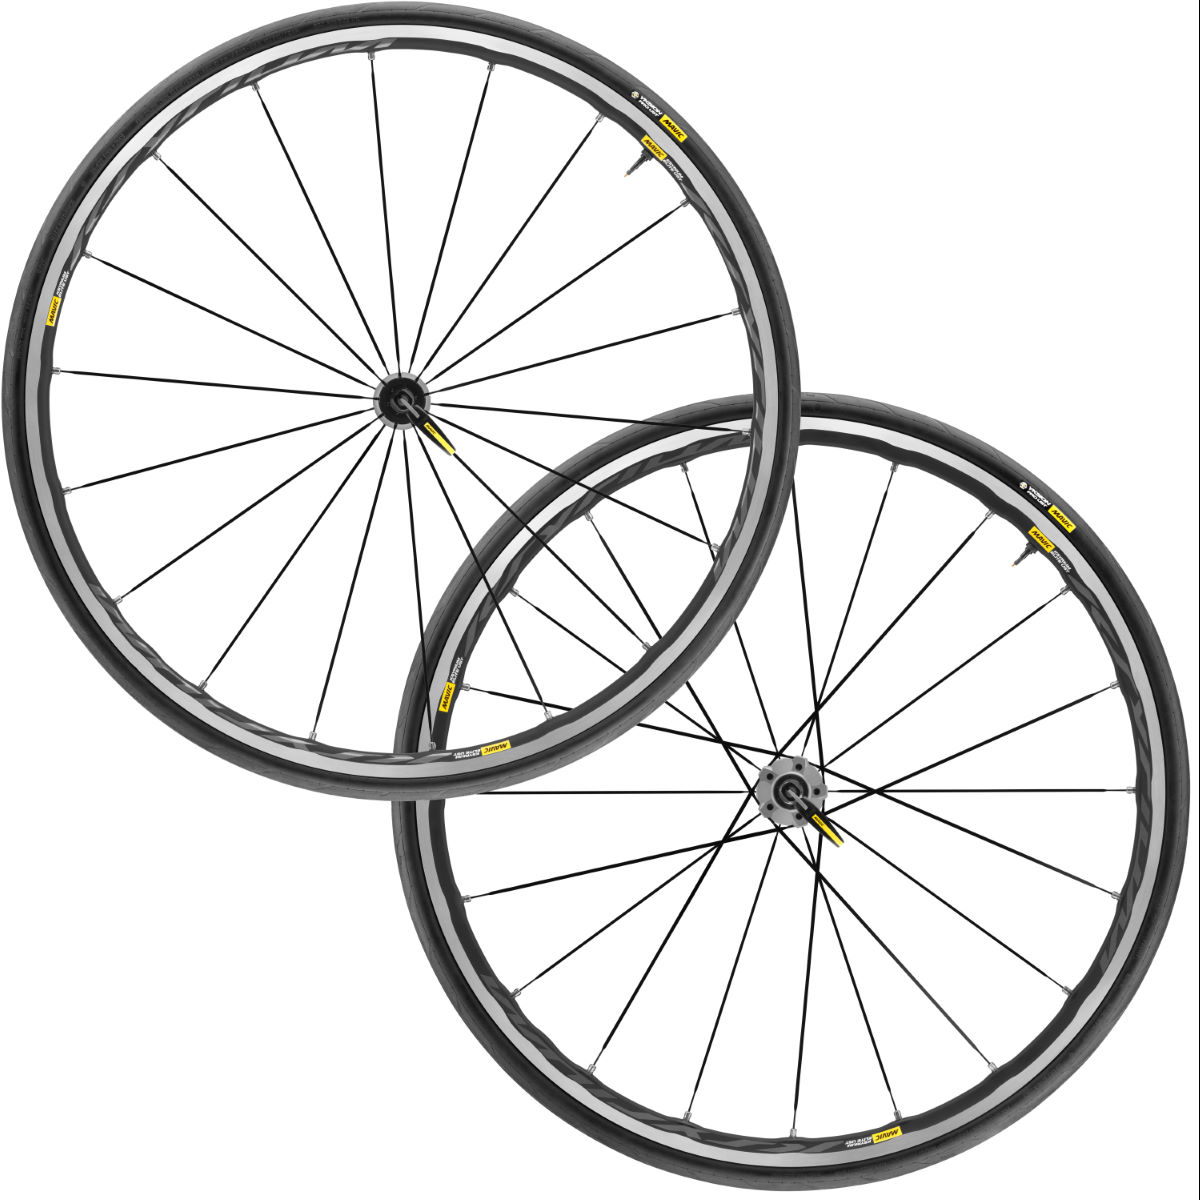 Mavic Ksyrium Elite Wheelset (UST) - Wheel sets